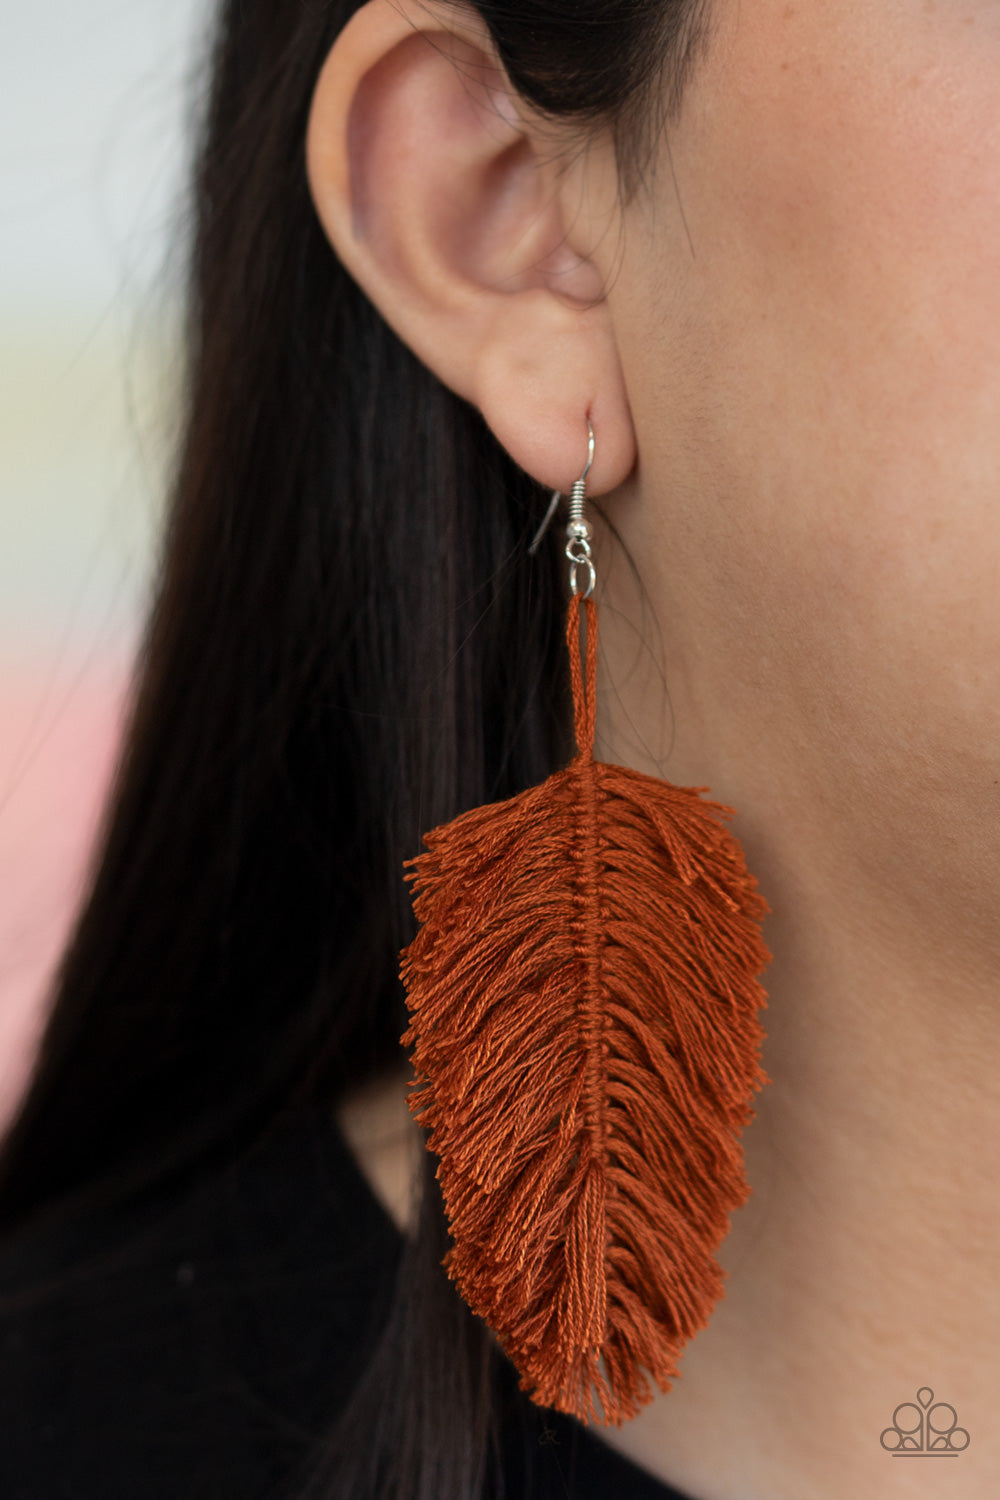 Paparazzi Jewelry & Accessories - Hanging By A Thread - Brown Earrings. Bling By Titia Boutique